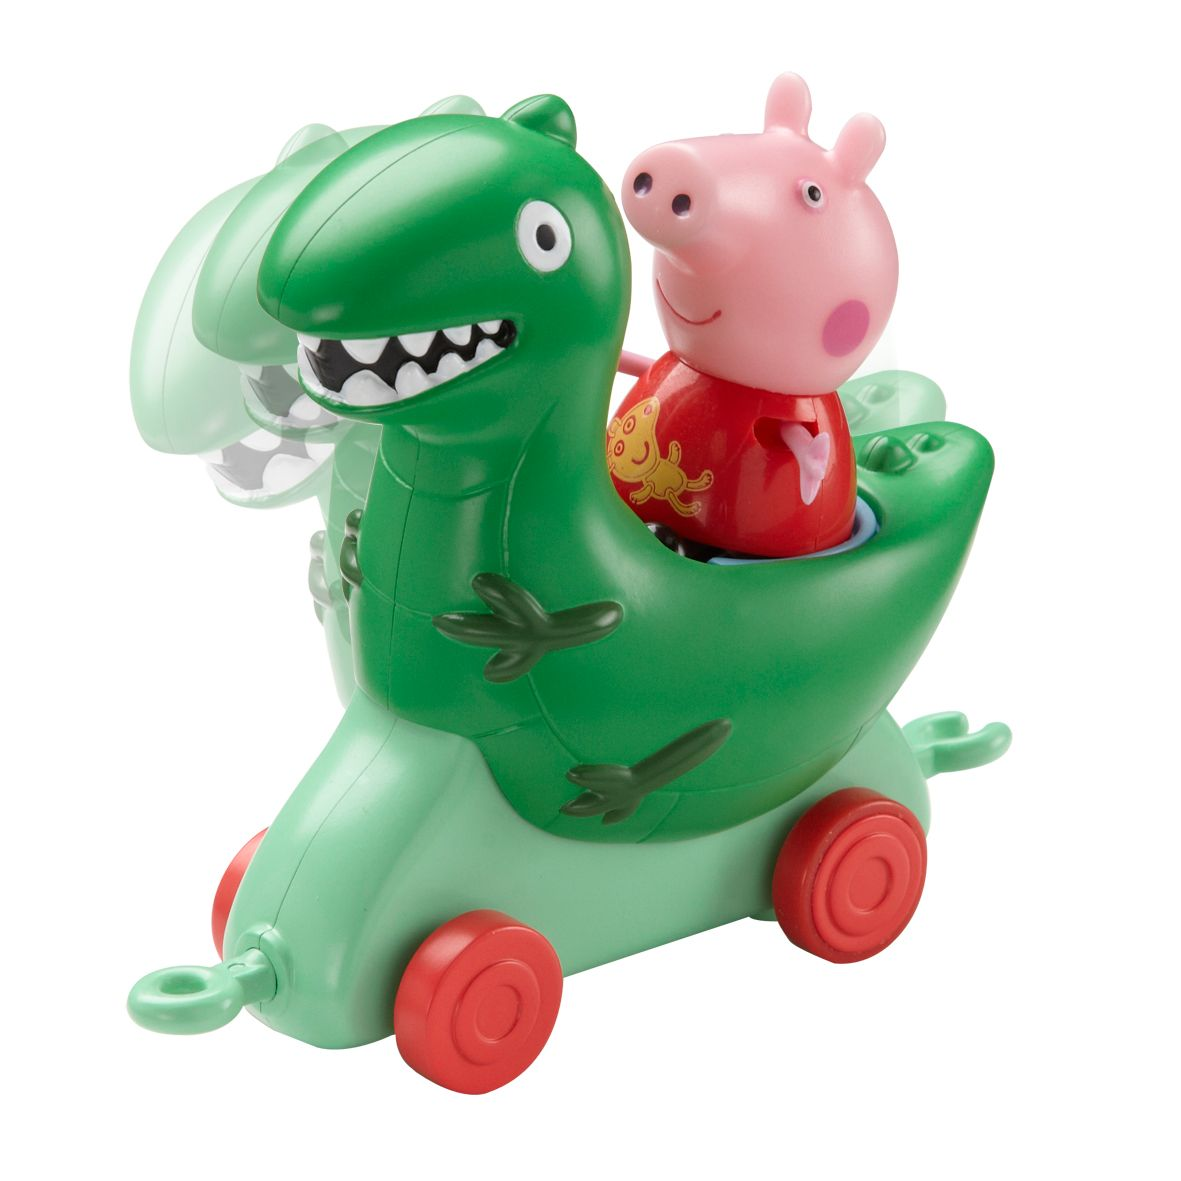 Theme Park Dinosaur Vehicle with Peppa